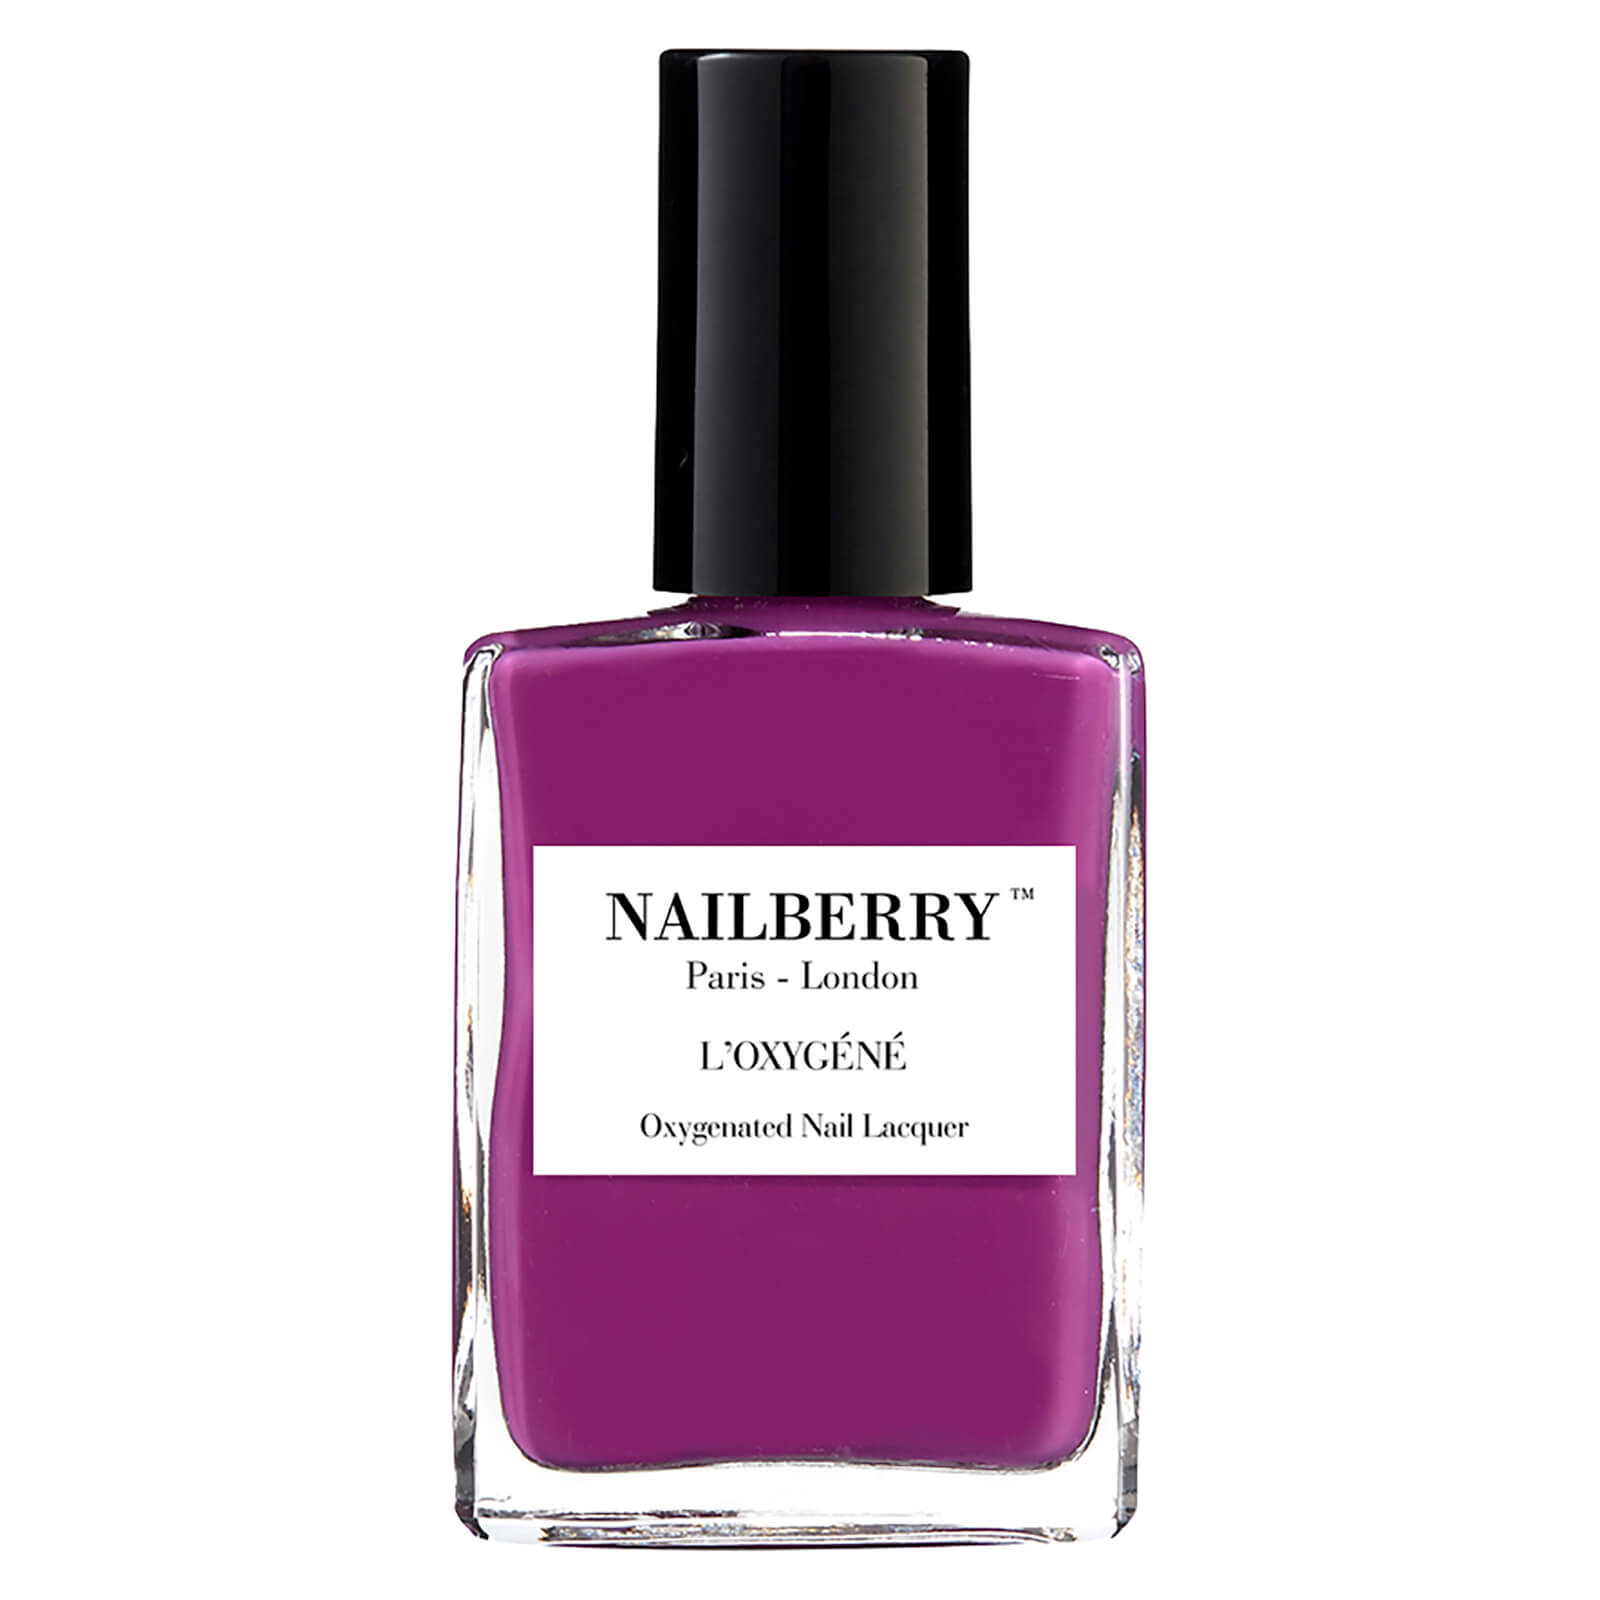 Nailberry L'Oxygene Nail Lacquer Extravagant